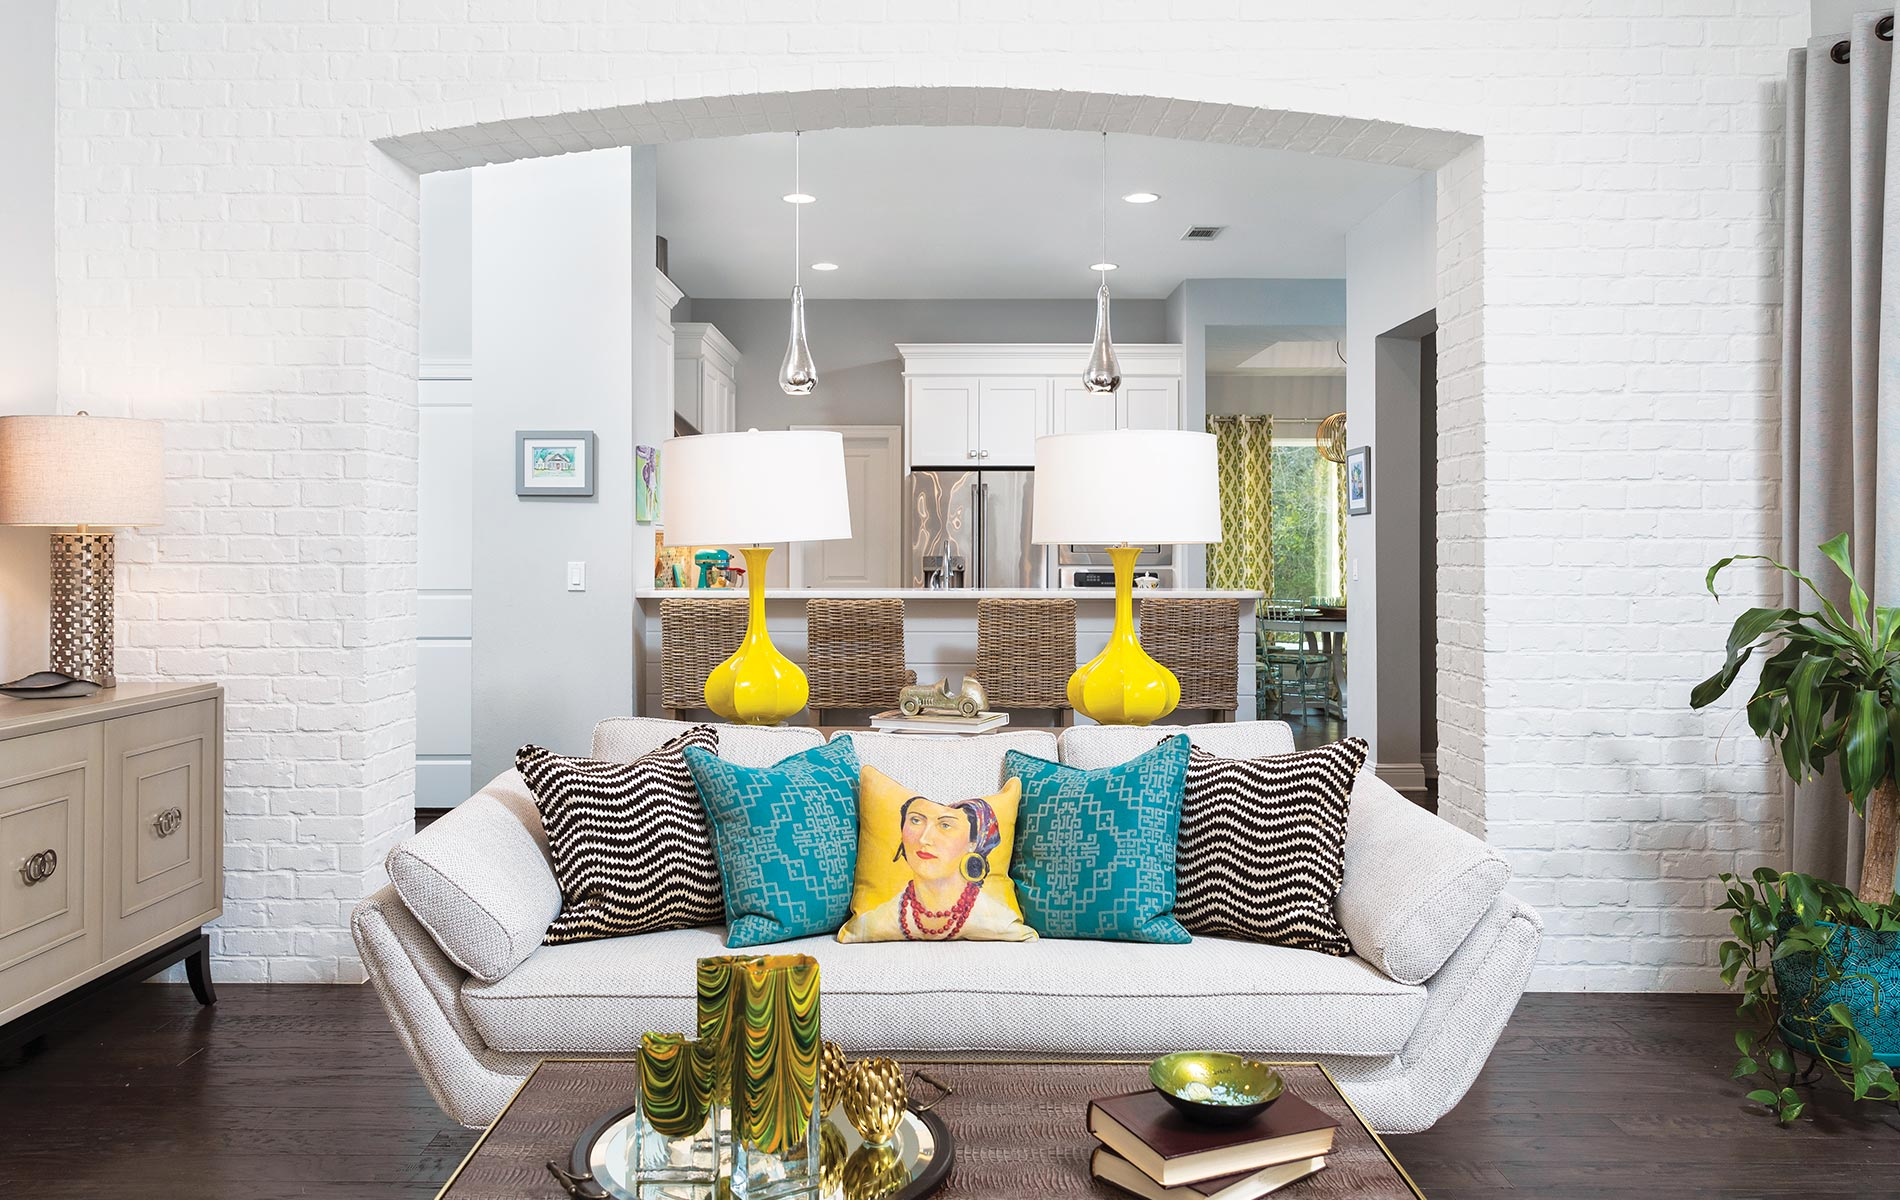 White painted brick is the perfect complement to colorful accents in this new construction home. Gorgeous lighting and proper placement of recessed can lights help create a bright and cheerful space with family in mind.